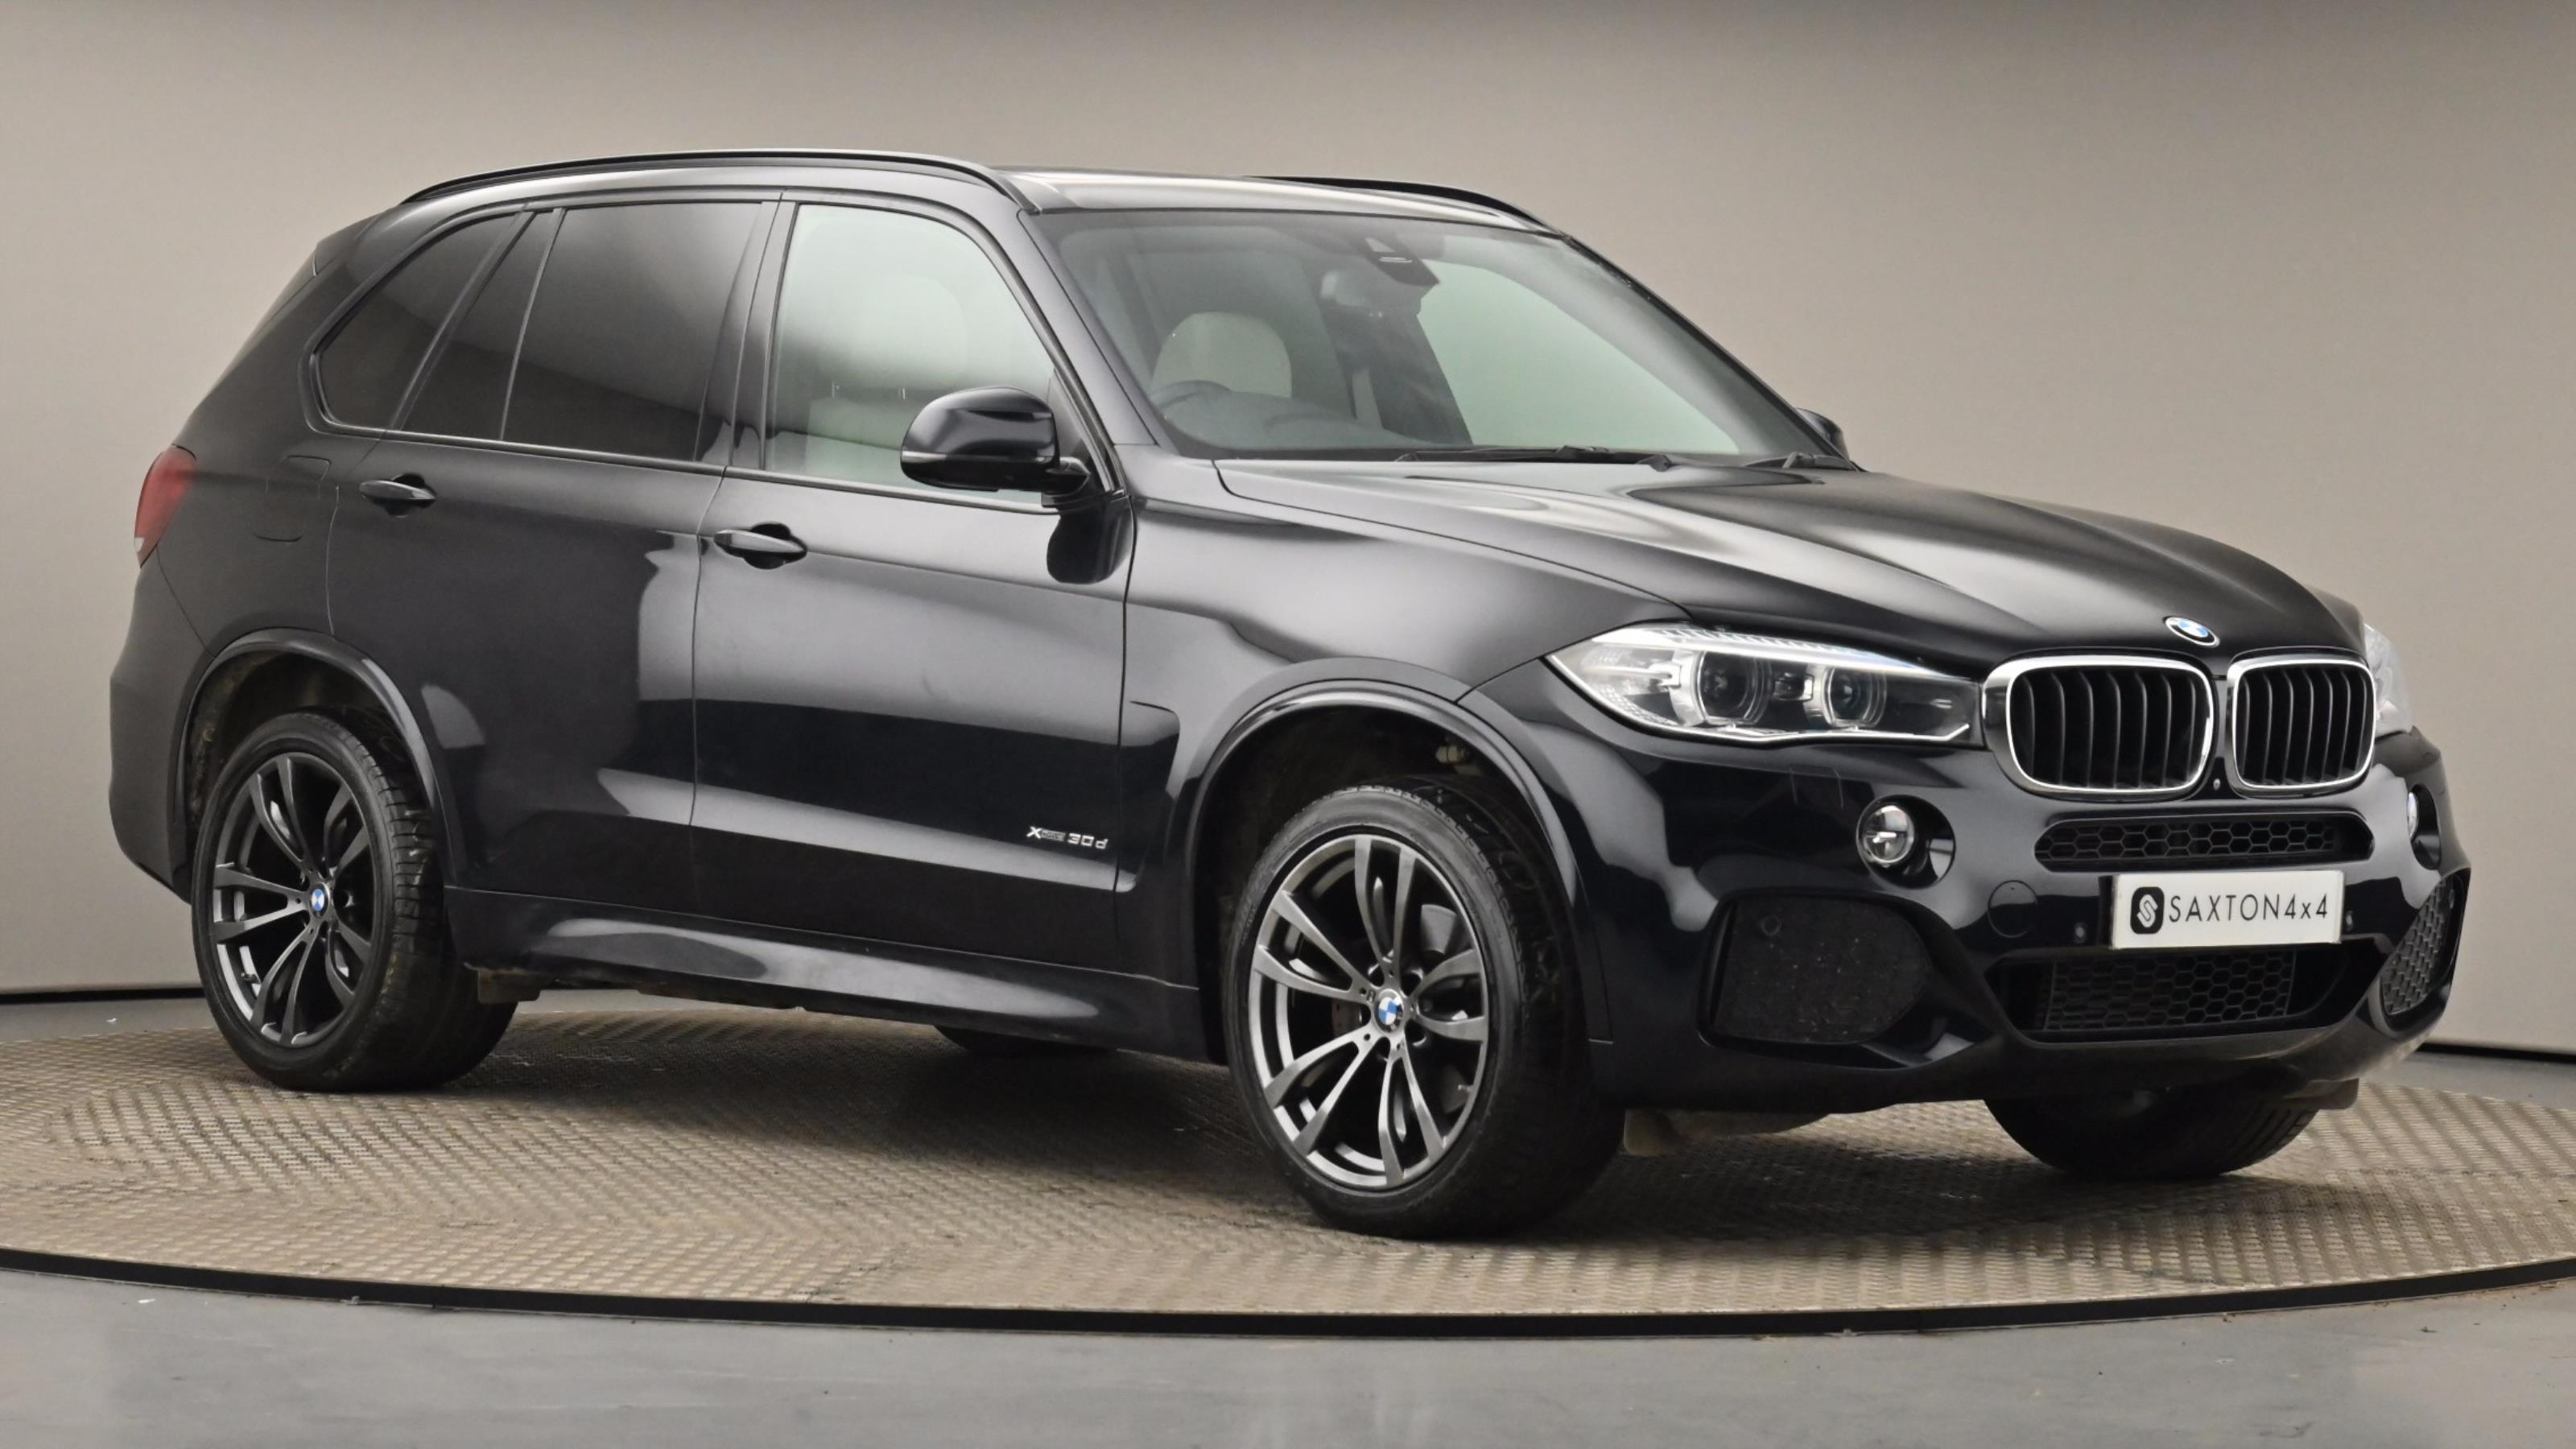 Used 2016 BMW X5 xDrive30d M Sport 5dr Auto [7 Seat] BLACK at Saxton4x4